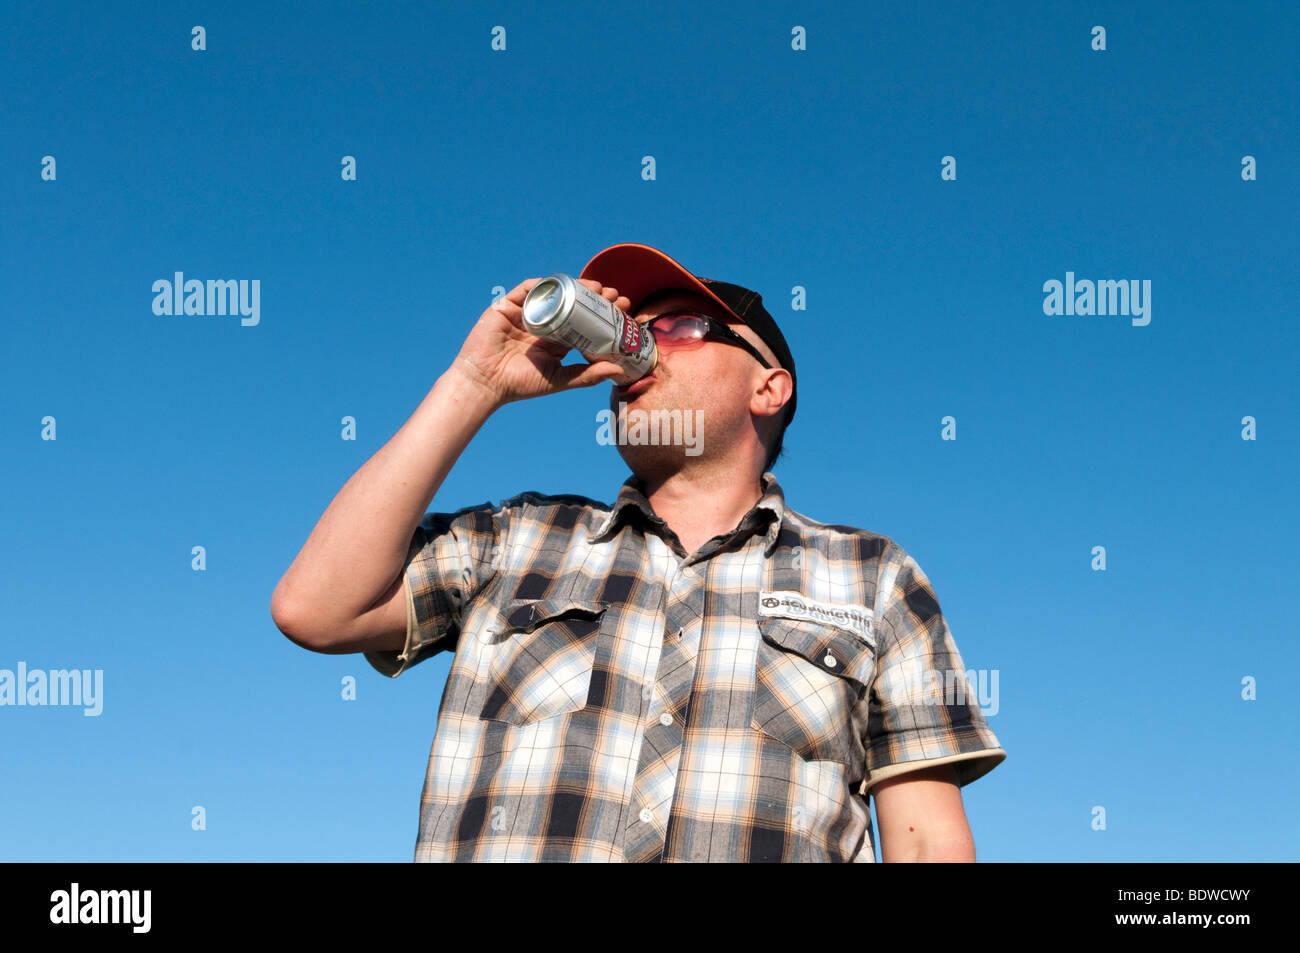 Homme d'une lager potable peut, England, UK Photo Stock